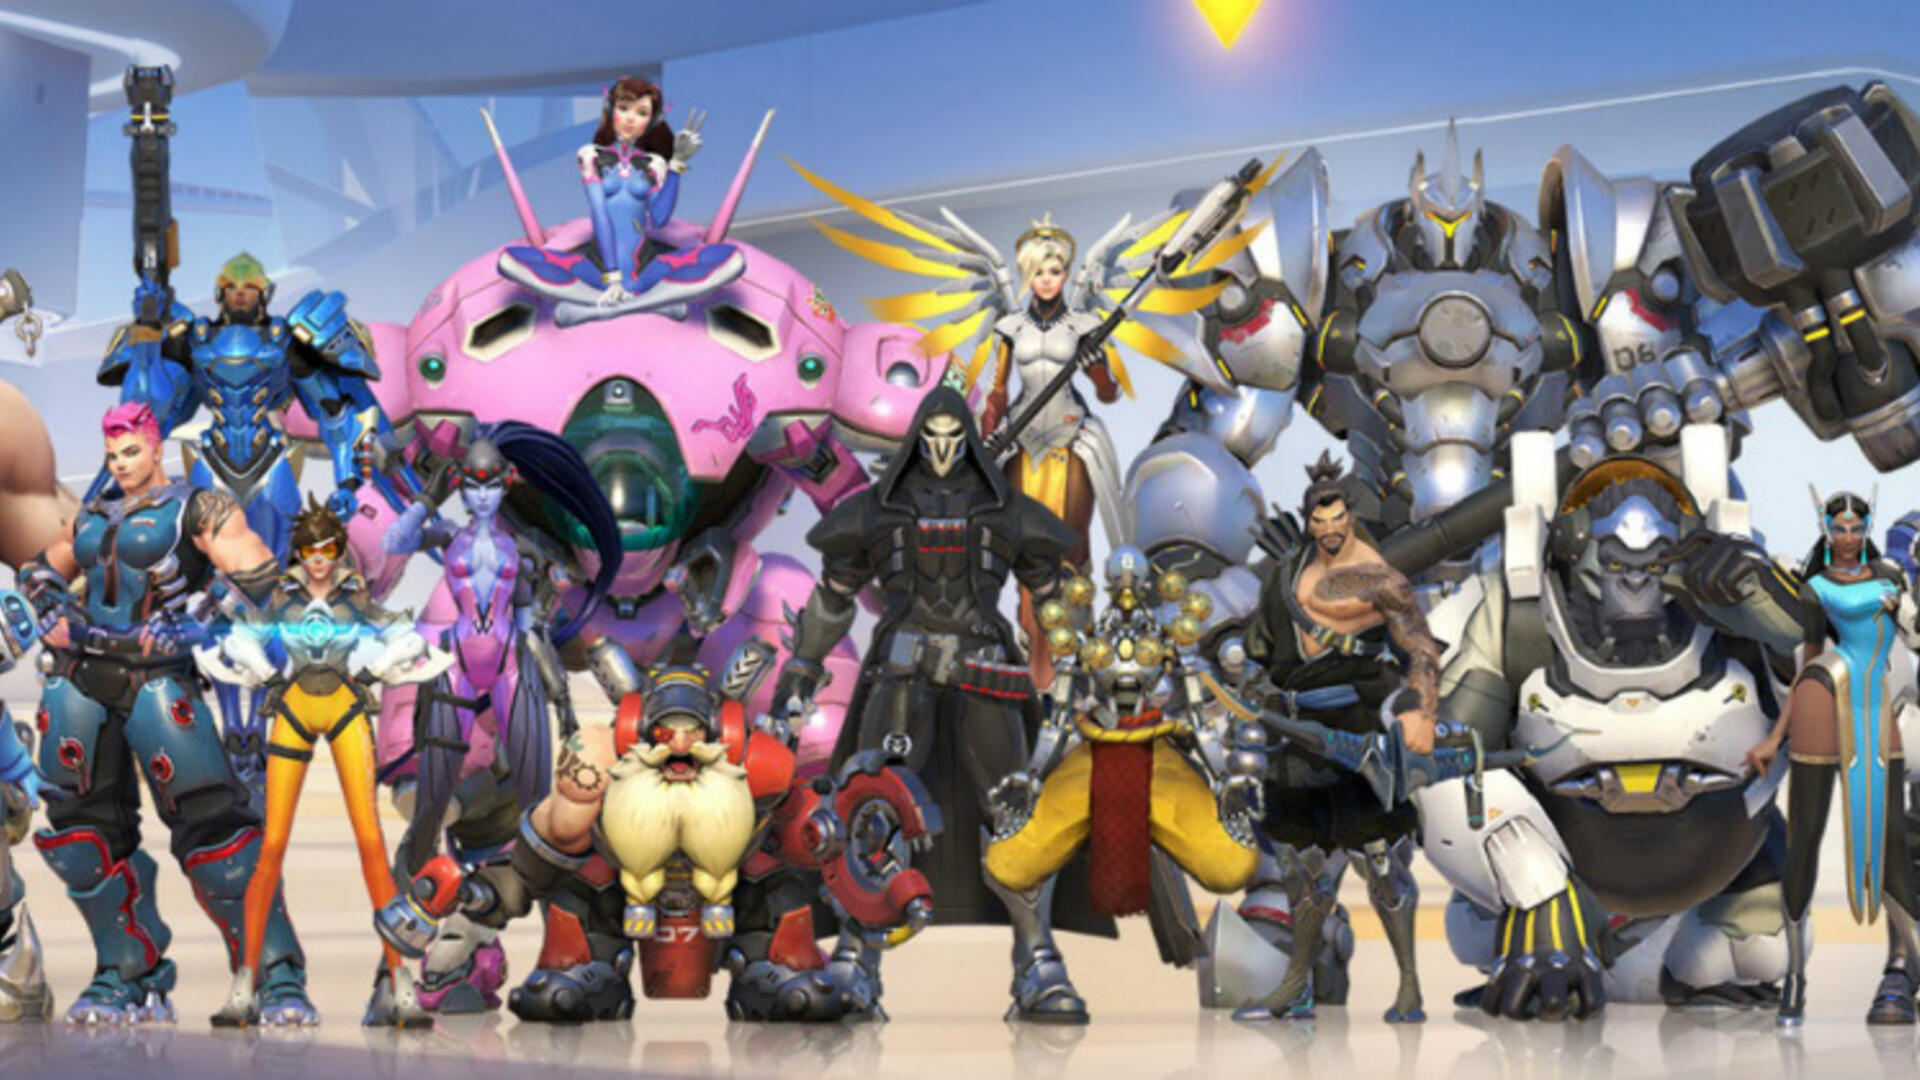 Overwatch Hits 7 Million Players as Blizzard Rebounds From Project Titan